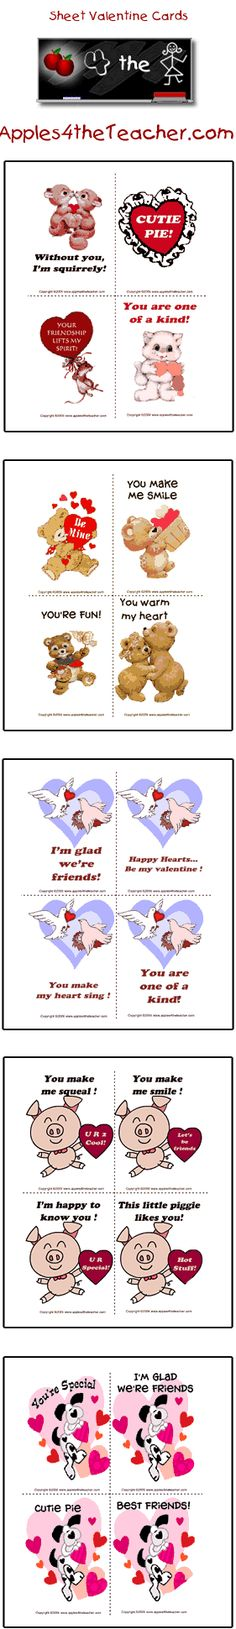 Printable Valentines Day cards, Interactive printable Valentine's Day greeting cards.